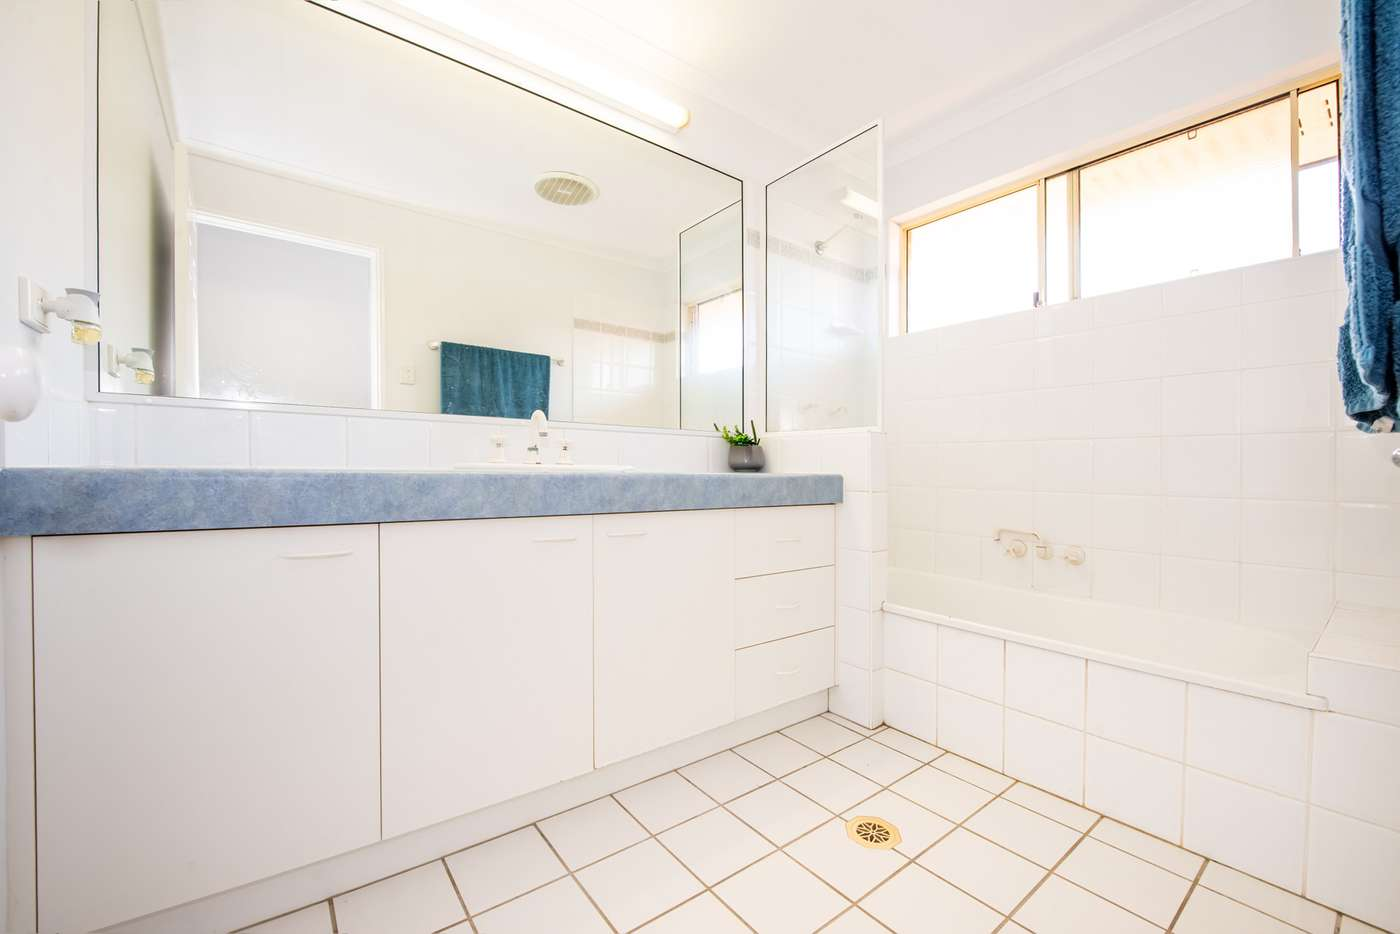 Seventh view of Homely house listing, 4 Pandanus Street, Beaconsfield QLD 4740